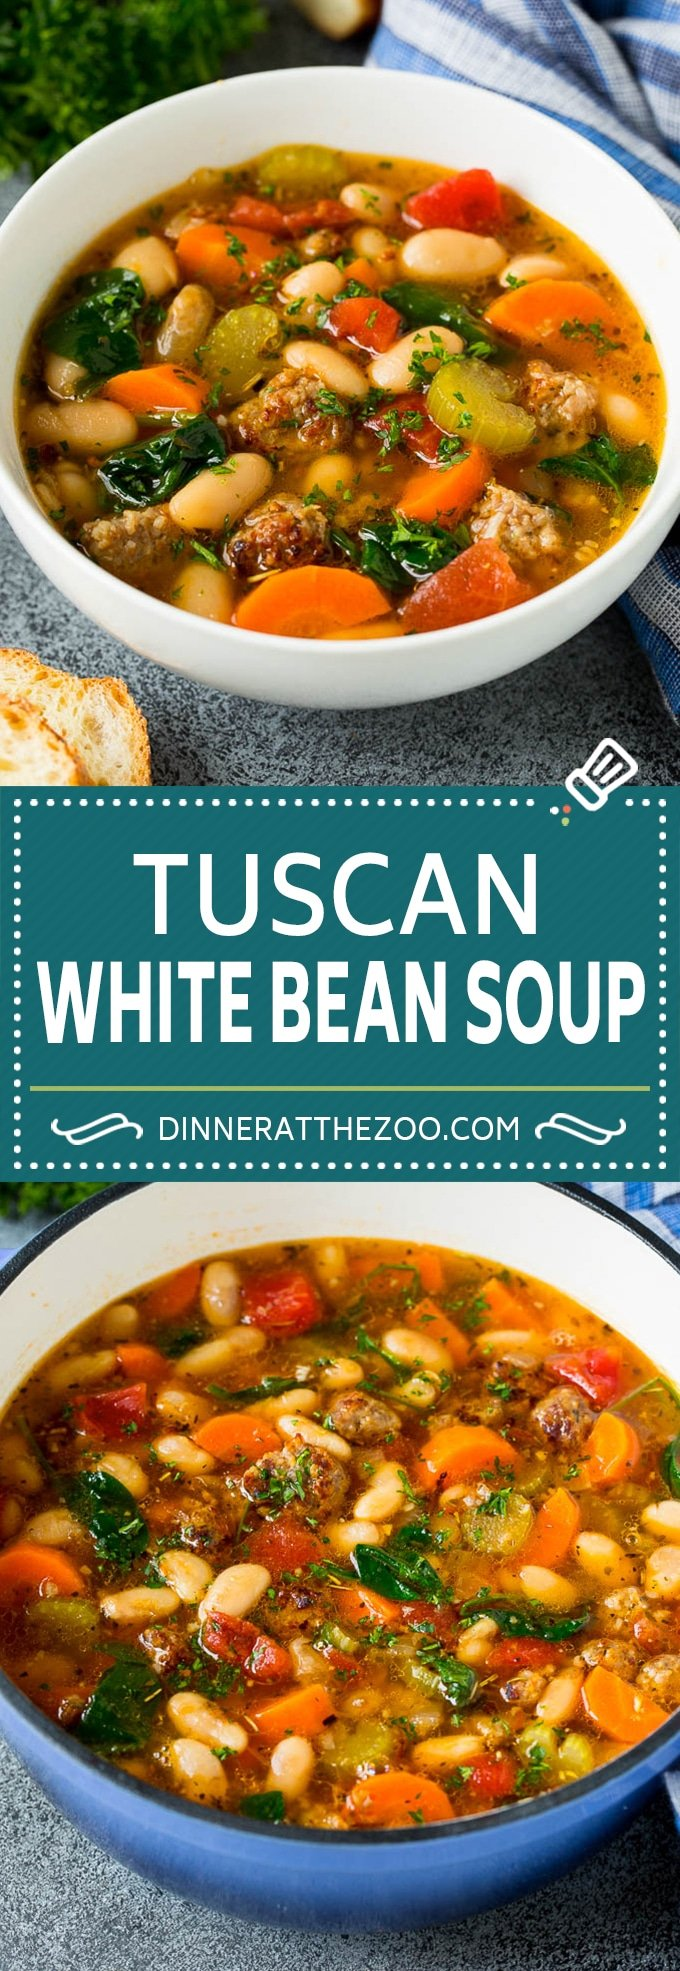 This Tuscan white bean soup is a hearty blend of Italian sausage, vegetables and beans, all simmered together in a savory tomato broth.